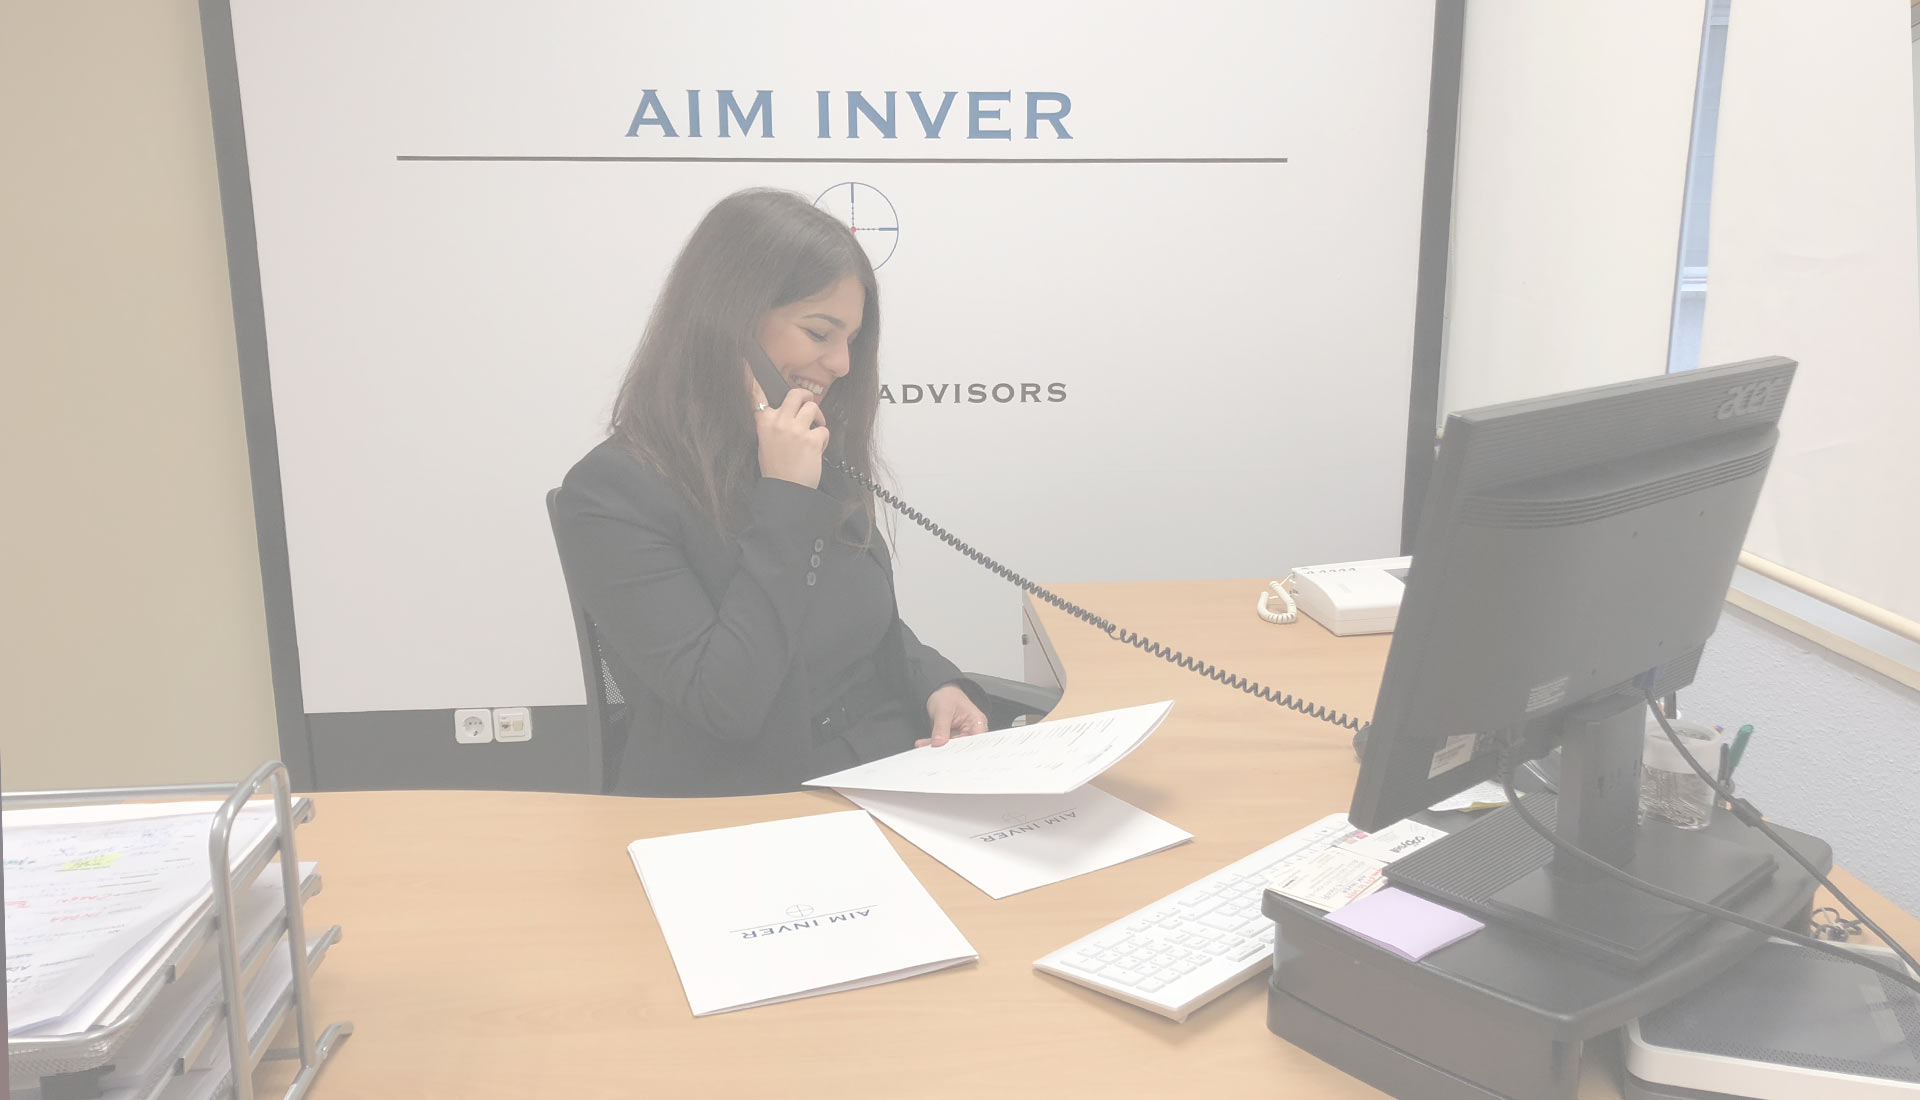 fondo-contactanos-aim-inver-asesores-Financieros-Madrid